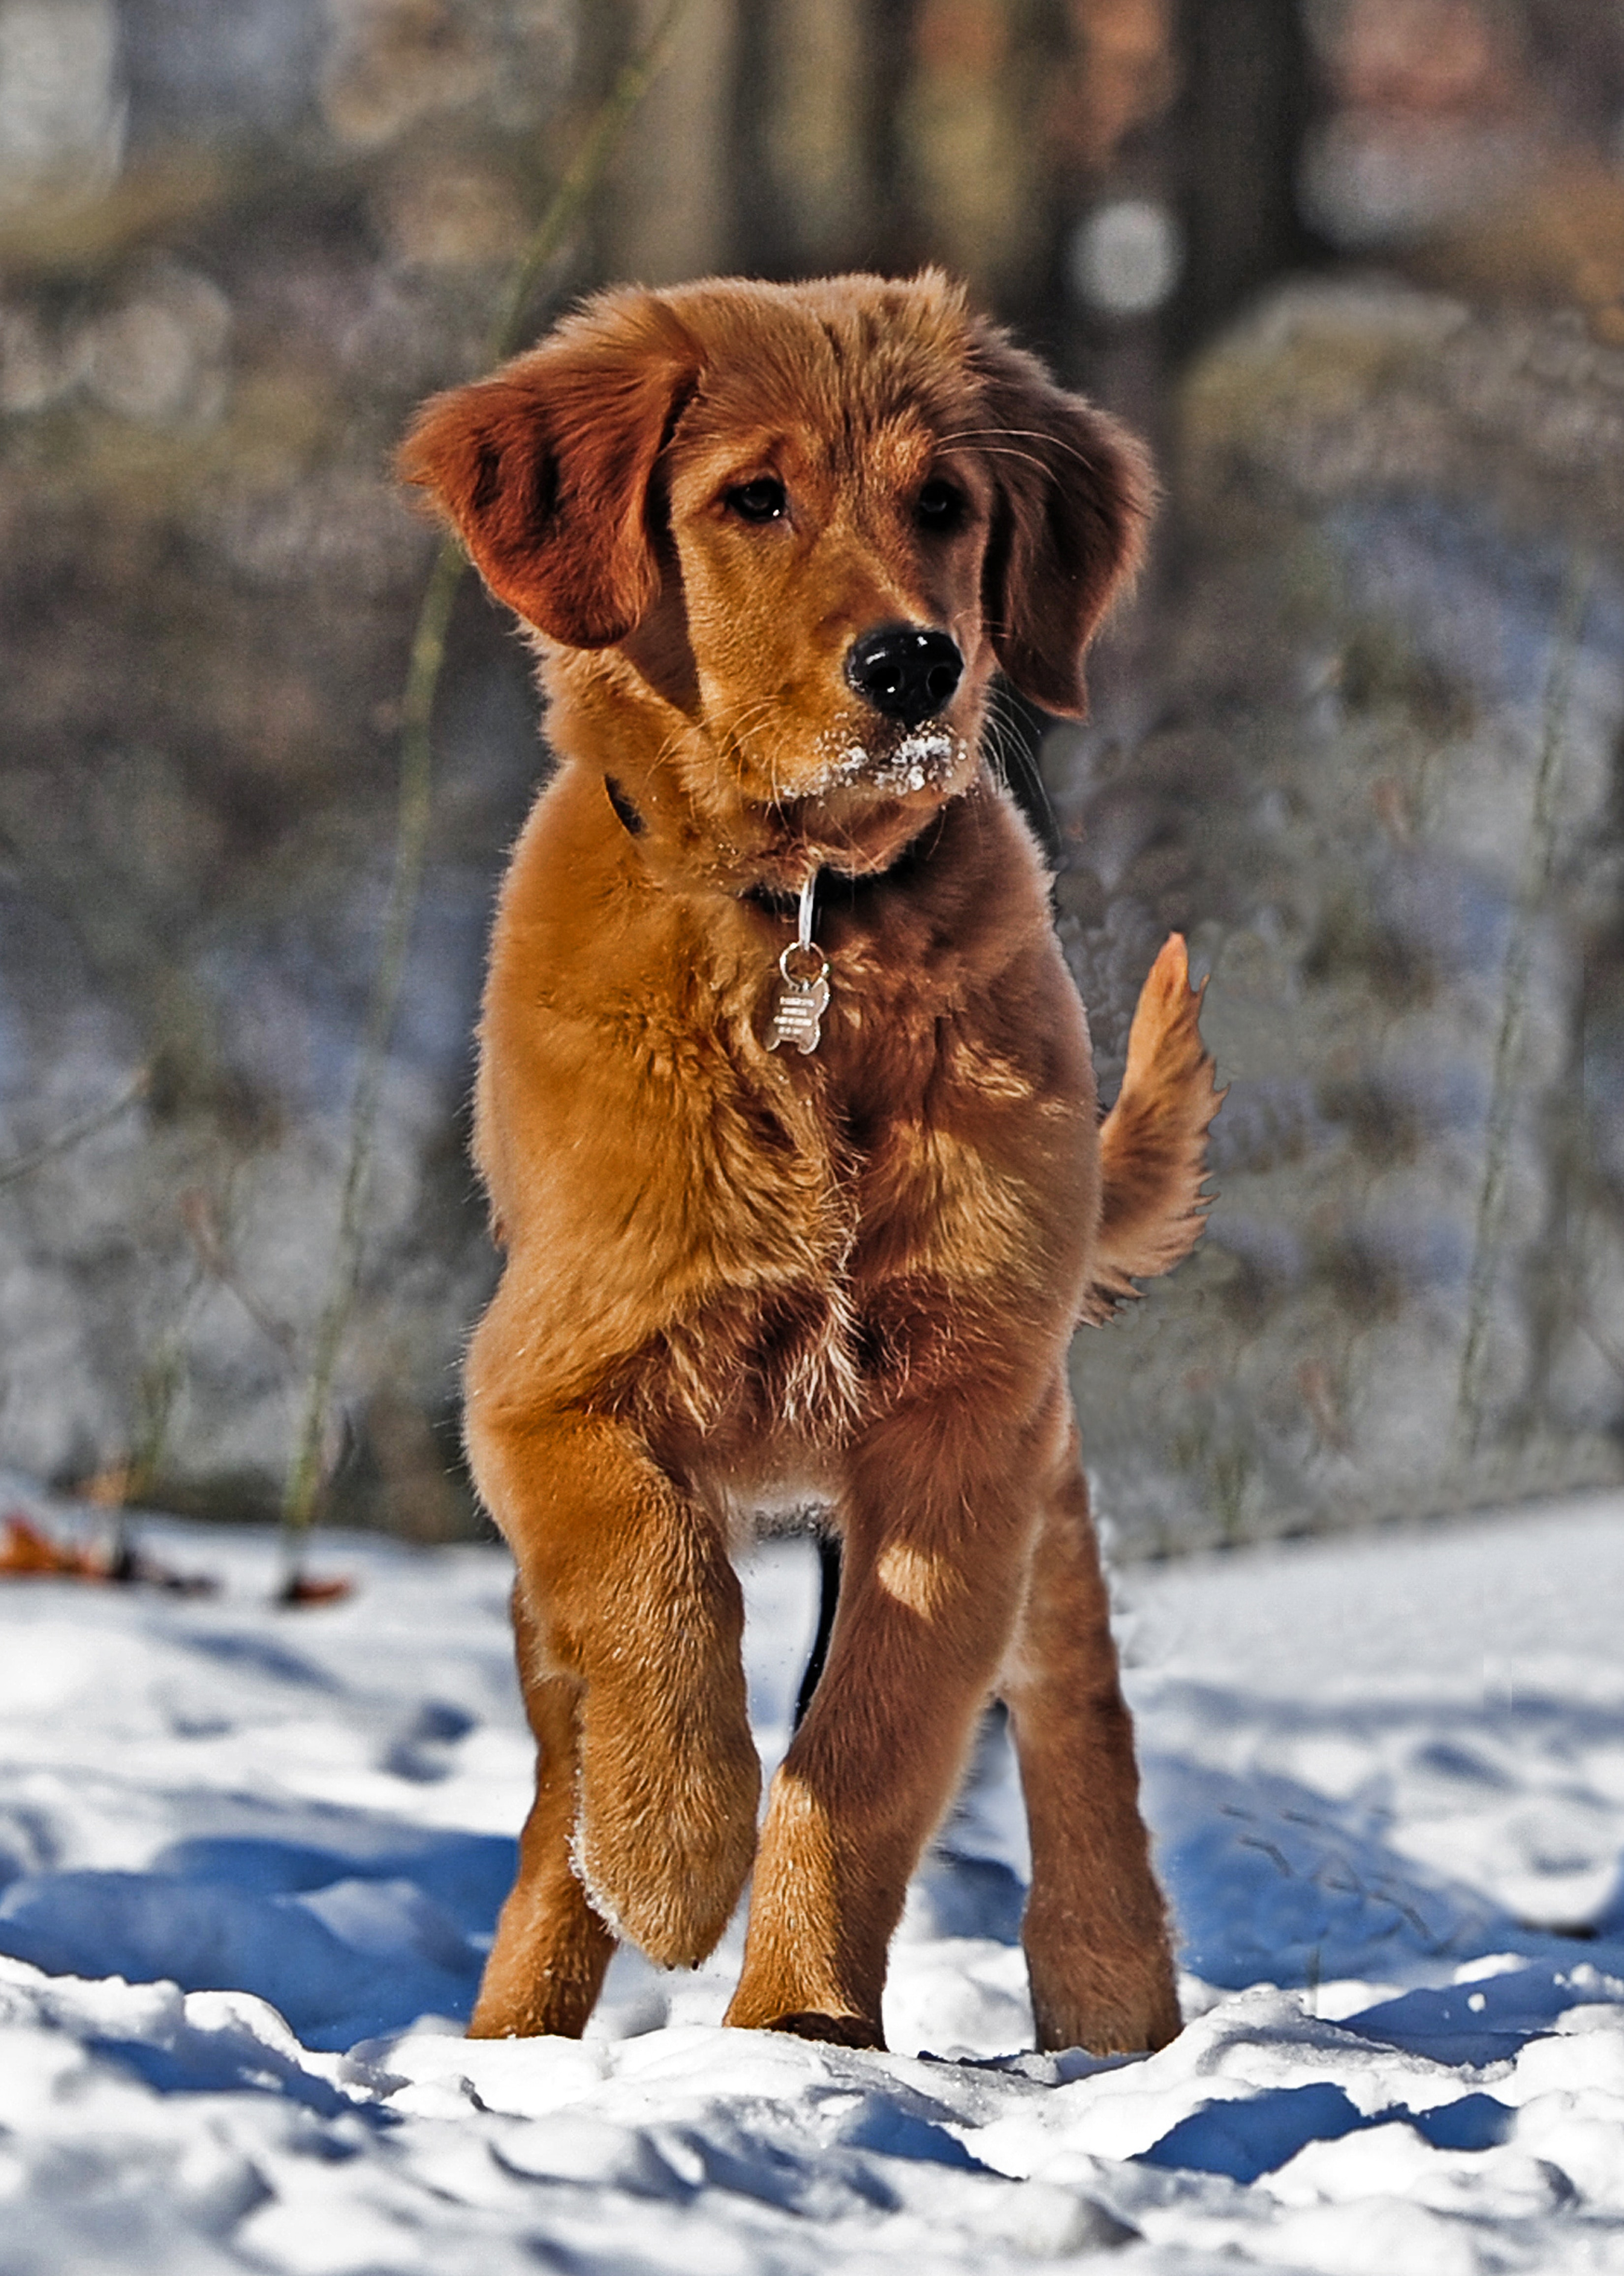 Selective Photo of Dark Golden Retriever Puppy Stands on Snowfield, Adorable, Fur, Winter, Snowy, HQ Photo